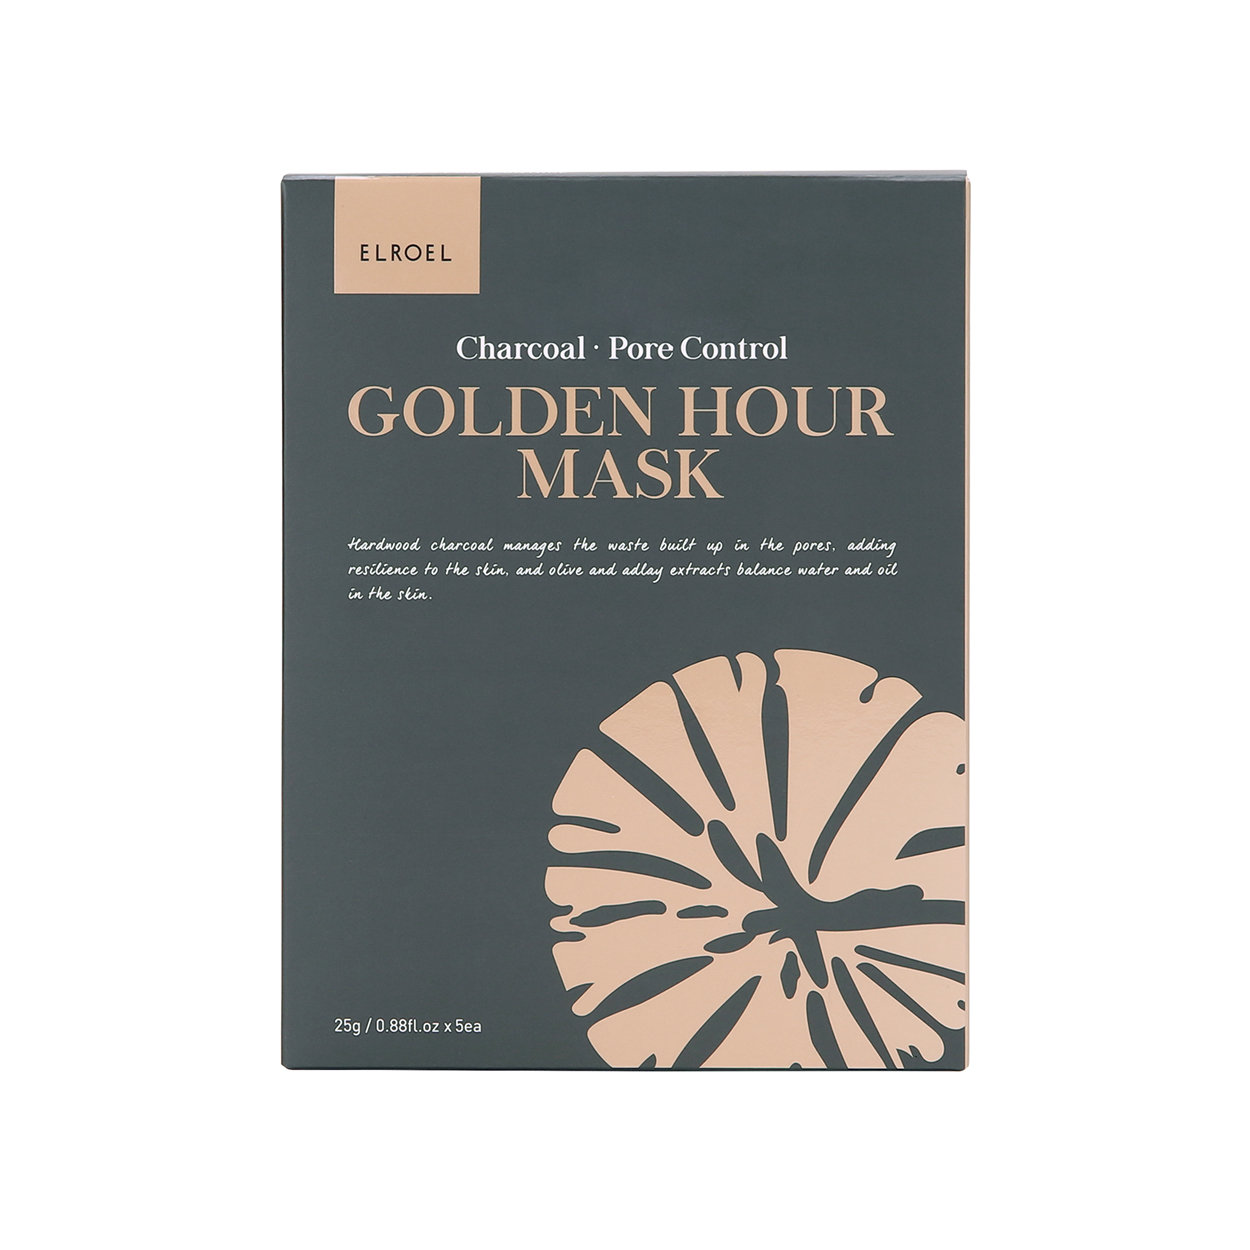 Image of 5 Maschere Monouso Golden Hour - Charcoal